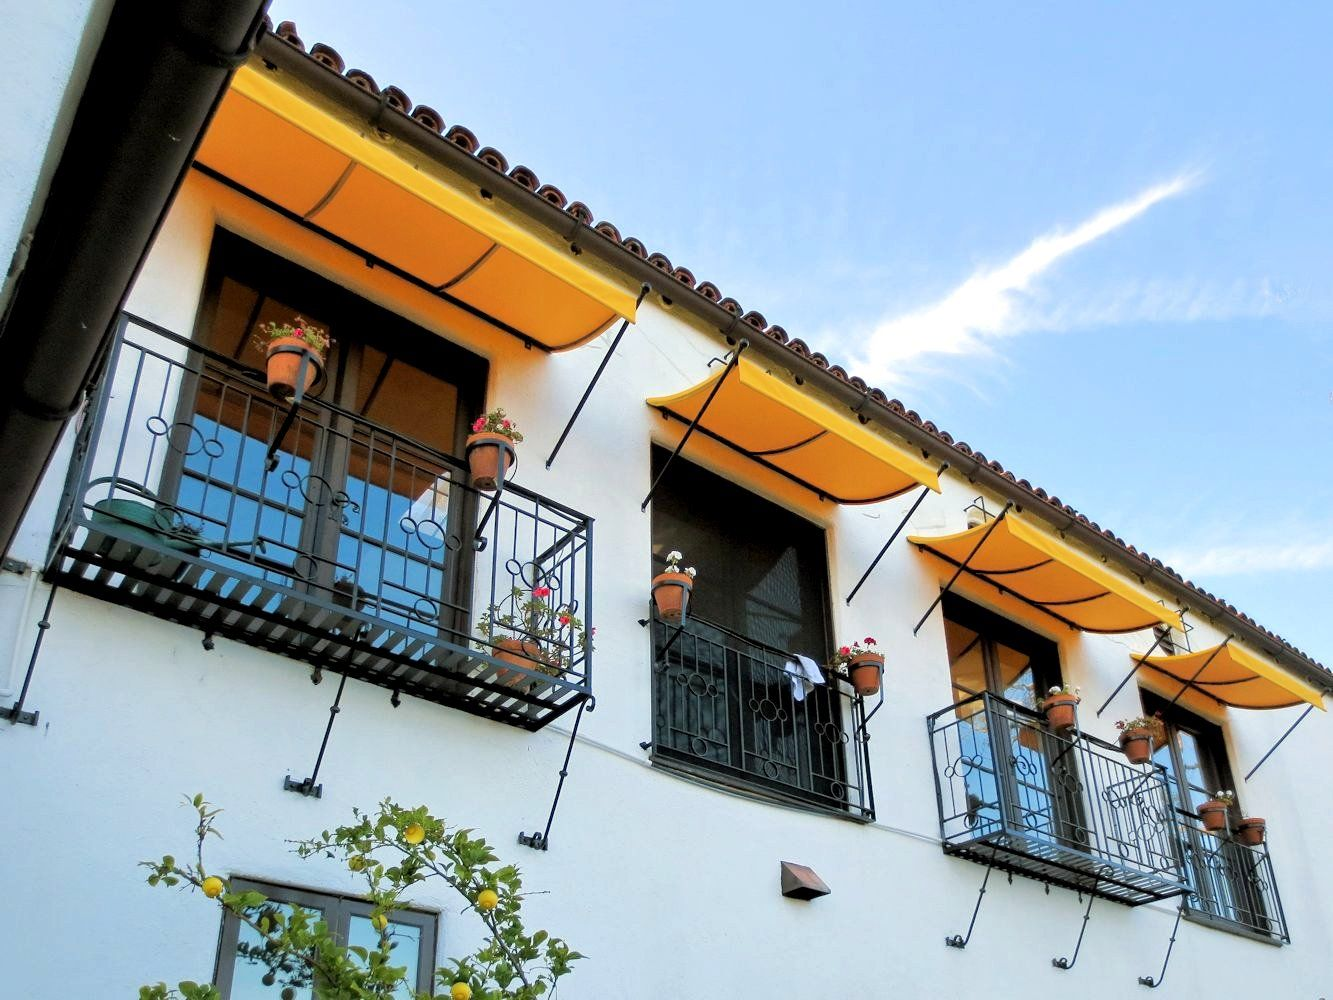 Spear Awnings By Superior Awning 800 780 0201 Custom Awnings Awning Spanish Revival